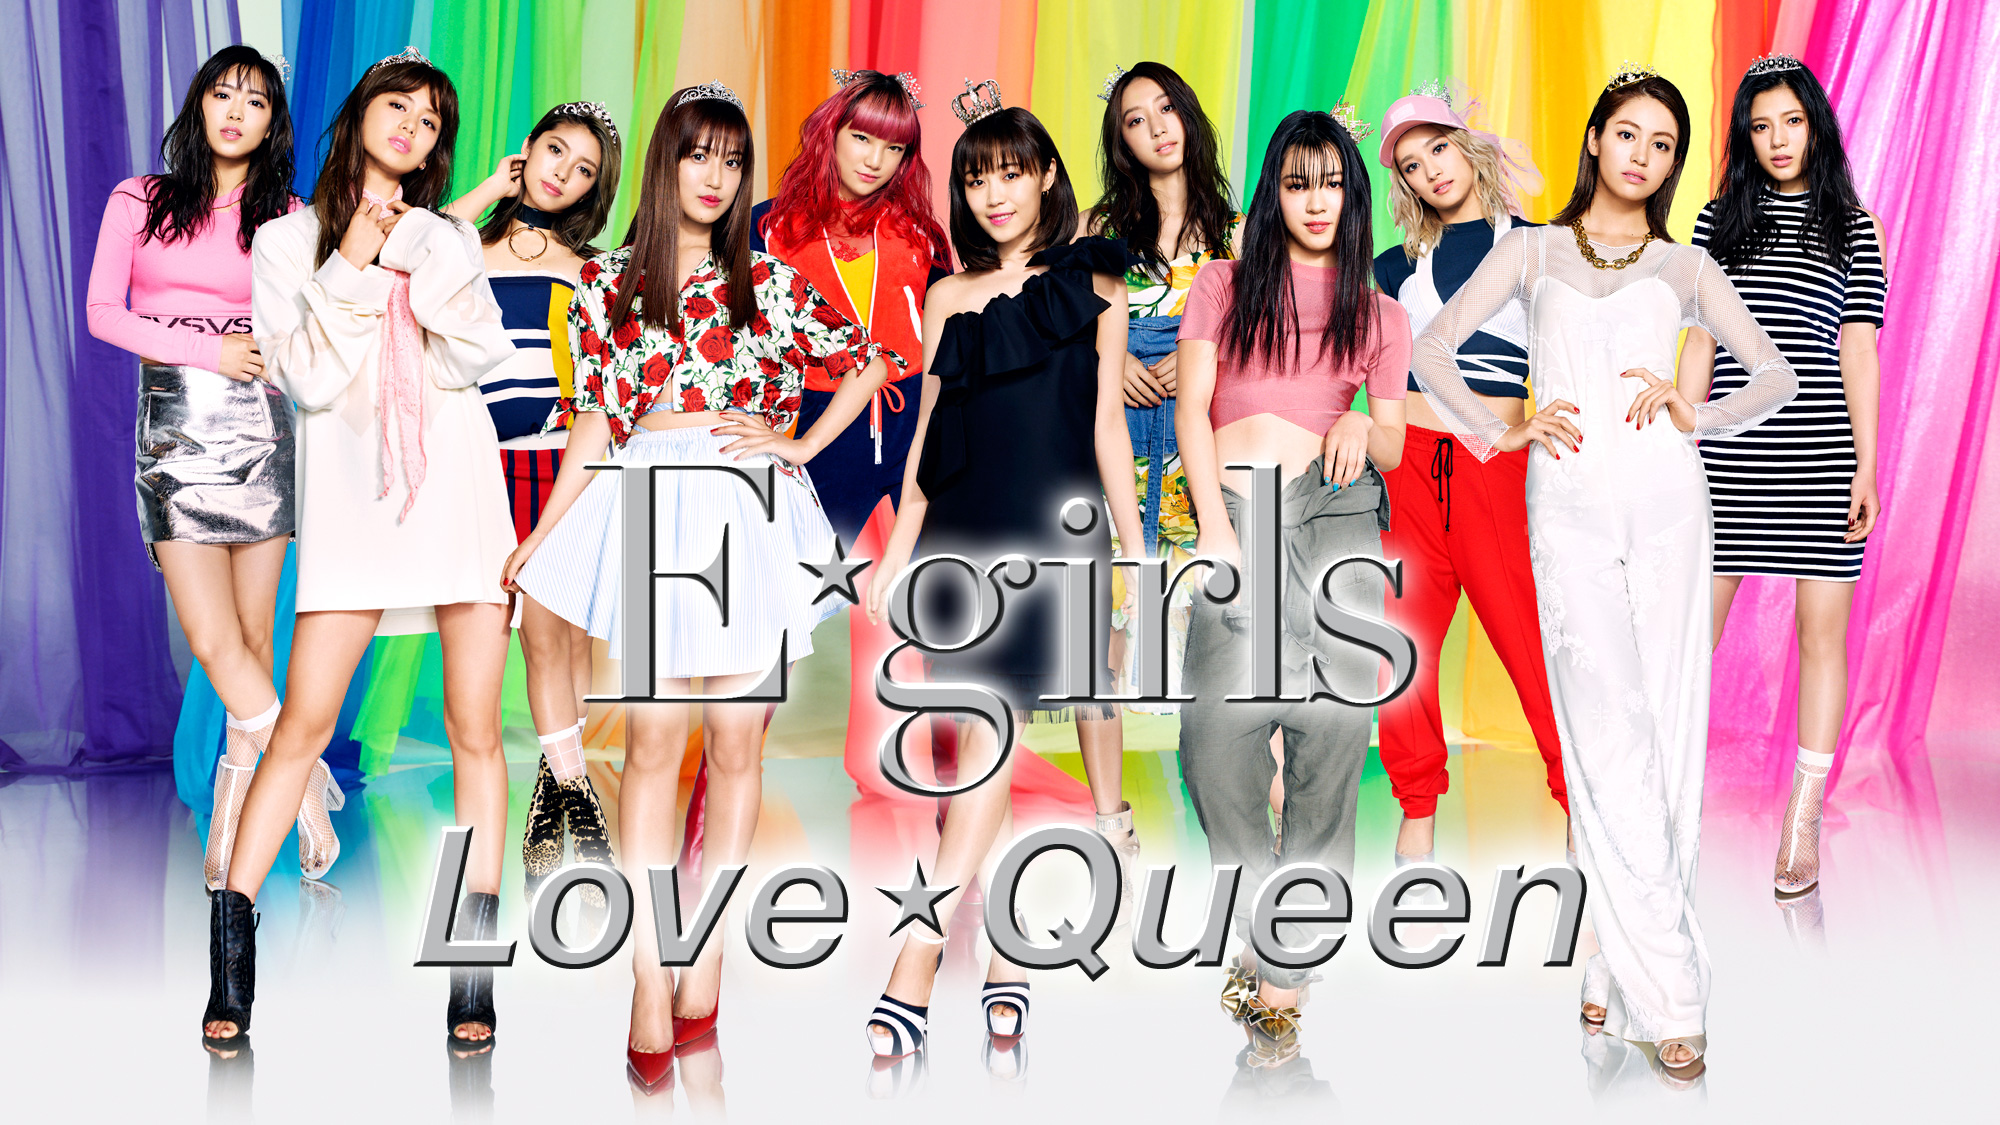 Citaten Love Queen : E girls(イー・ガールズ) official website